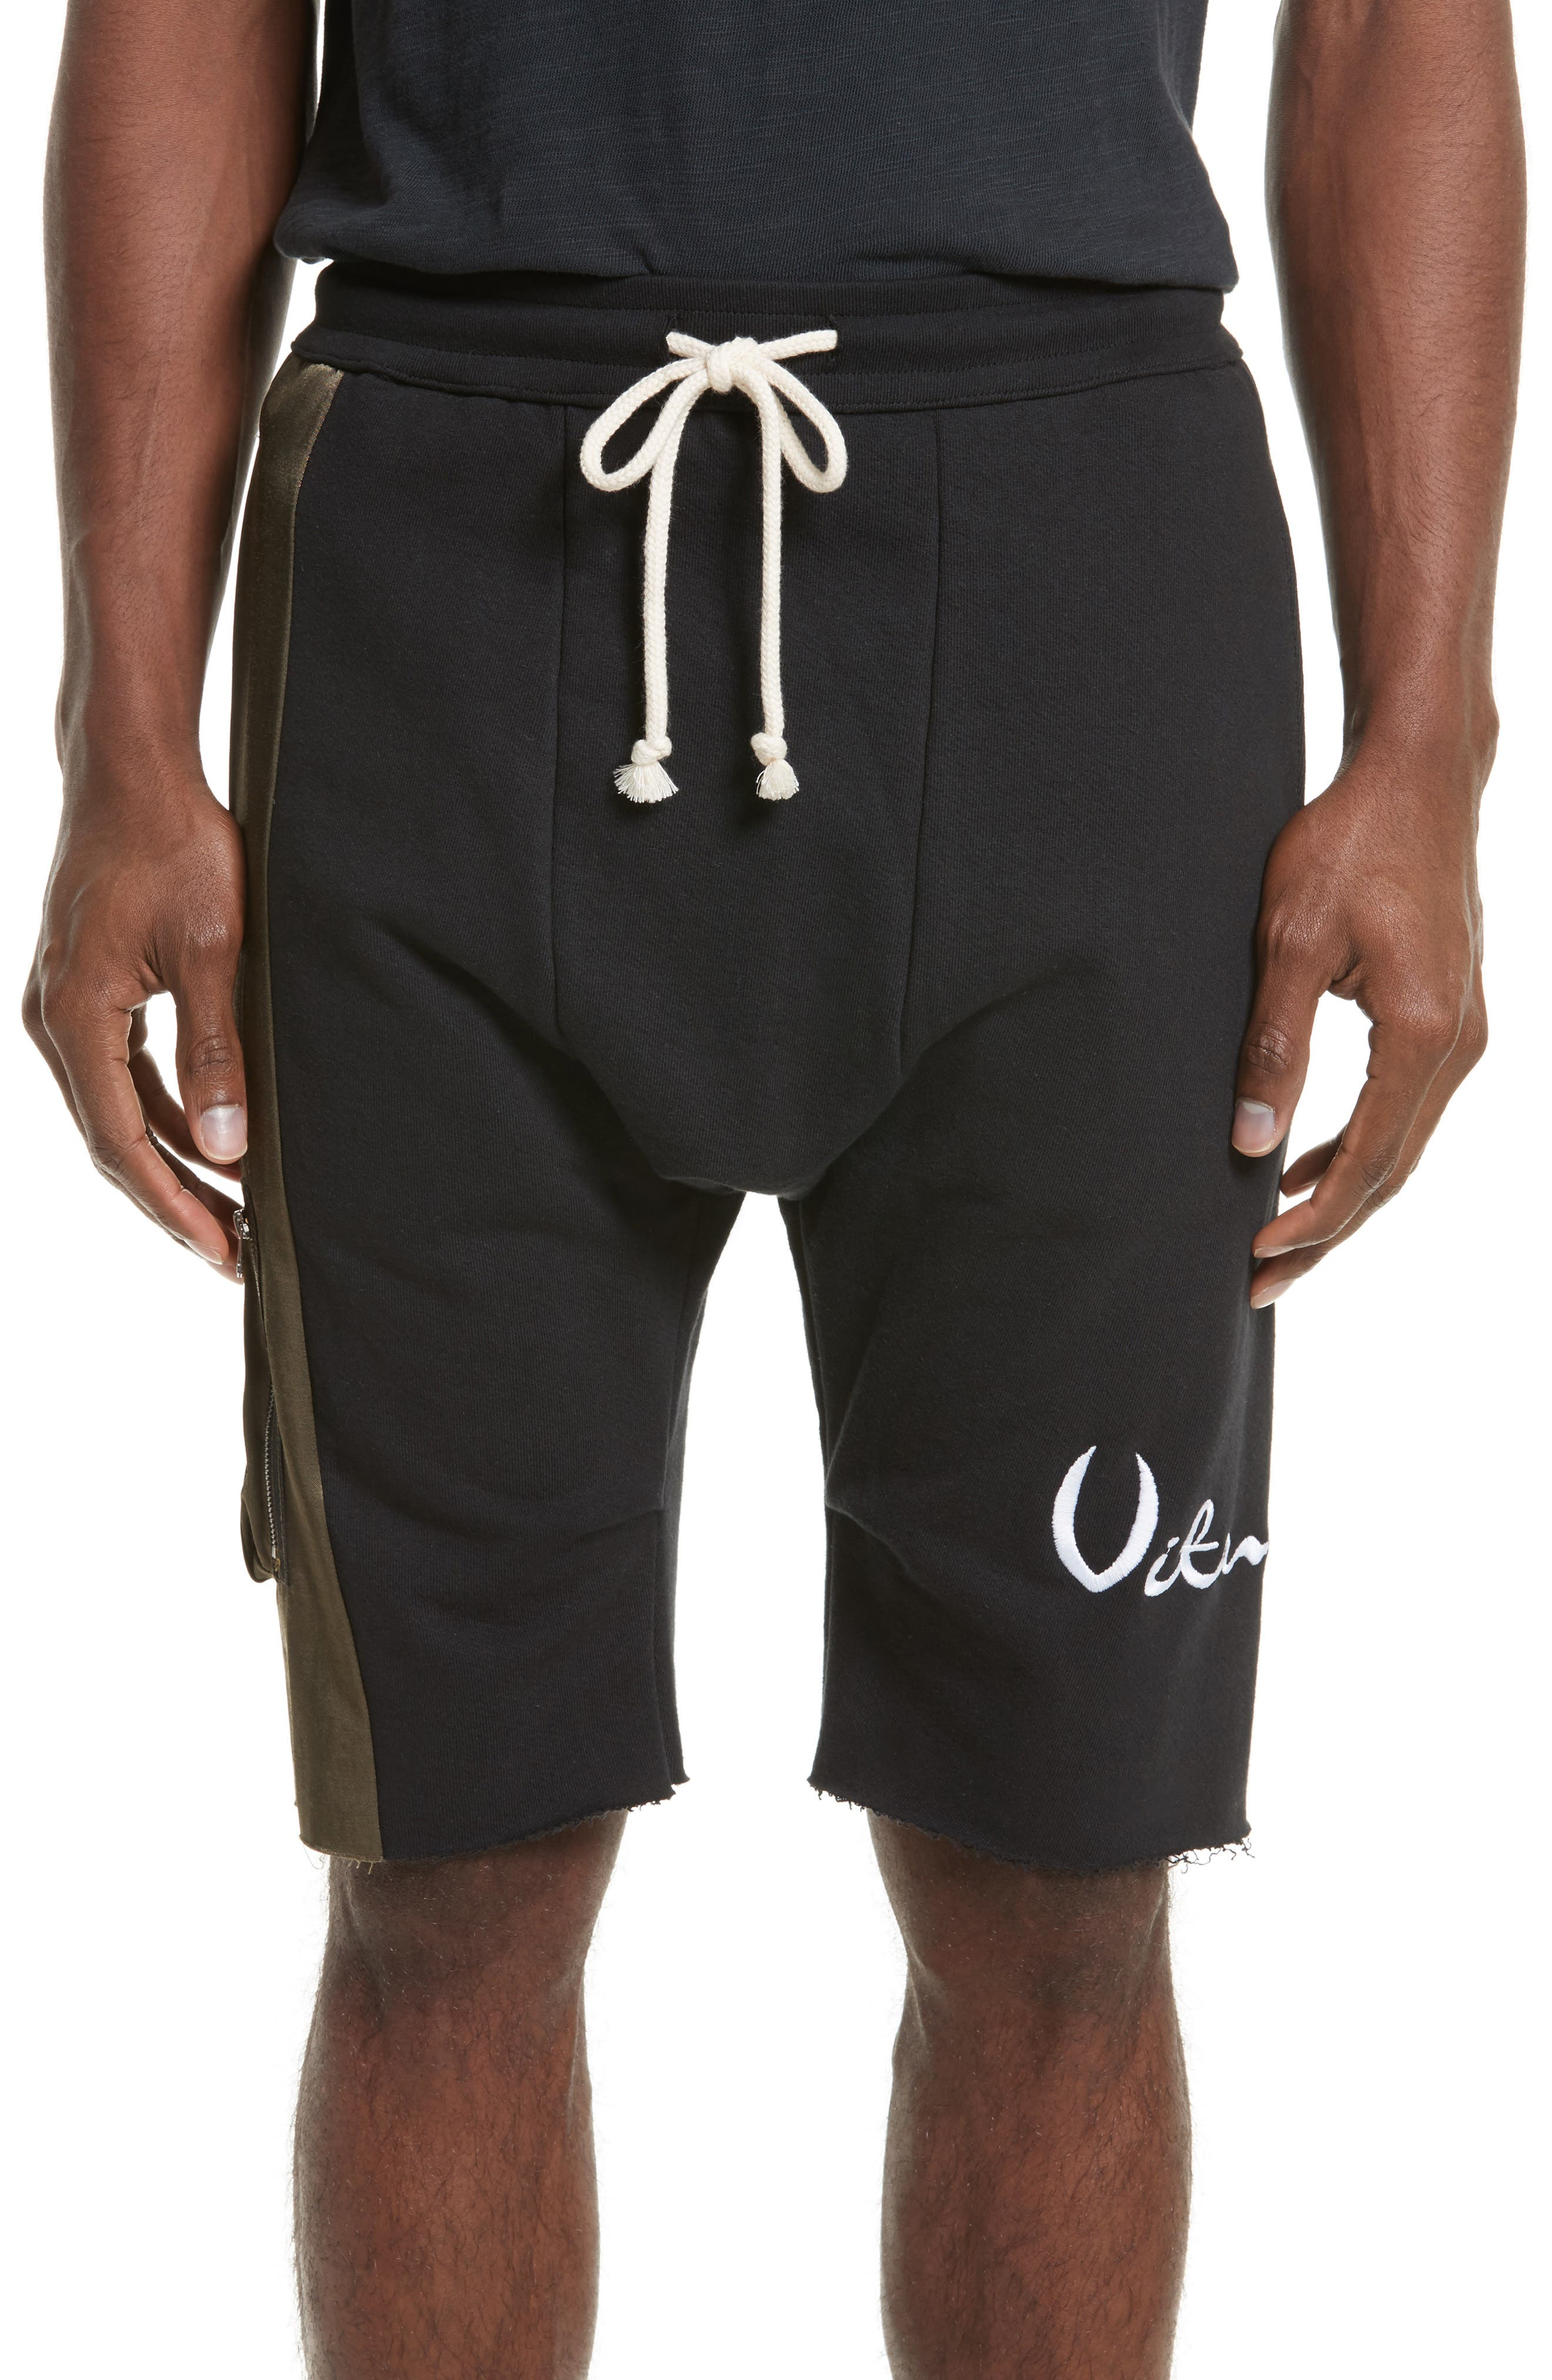 Drifter Vitamin D Graphic Panel Shorts